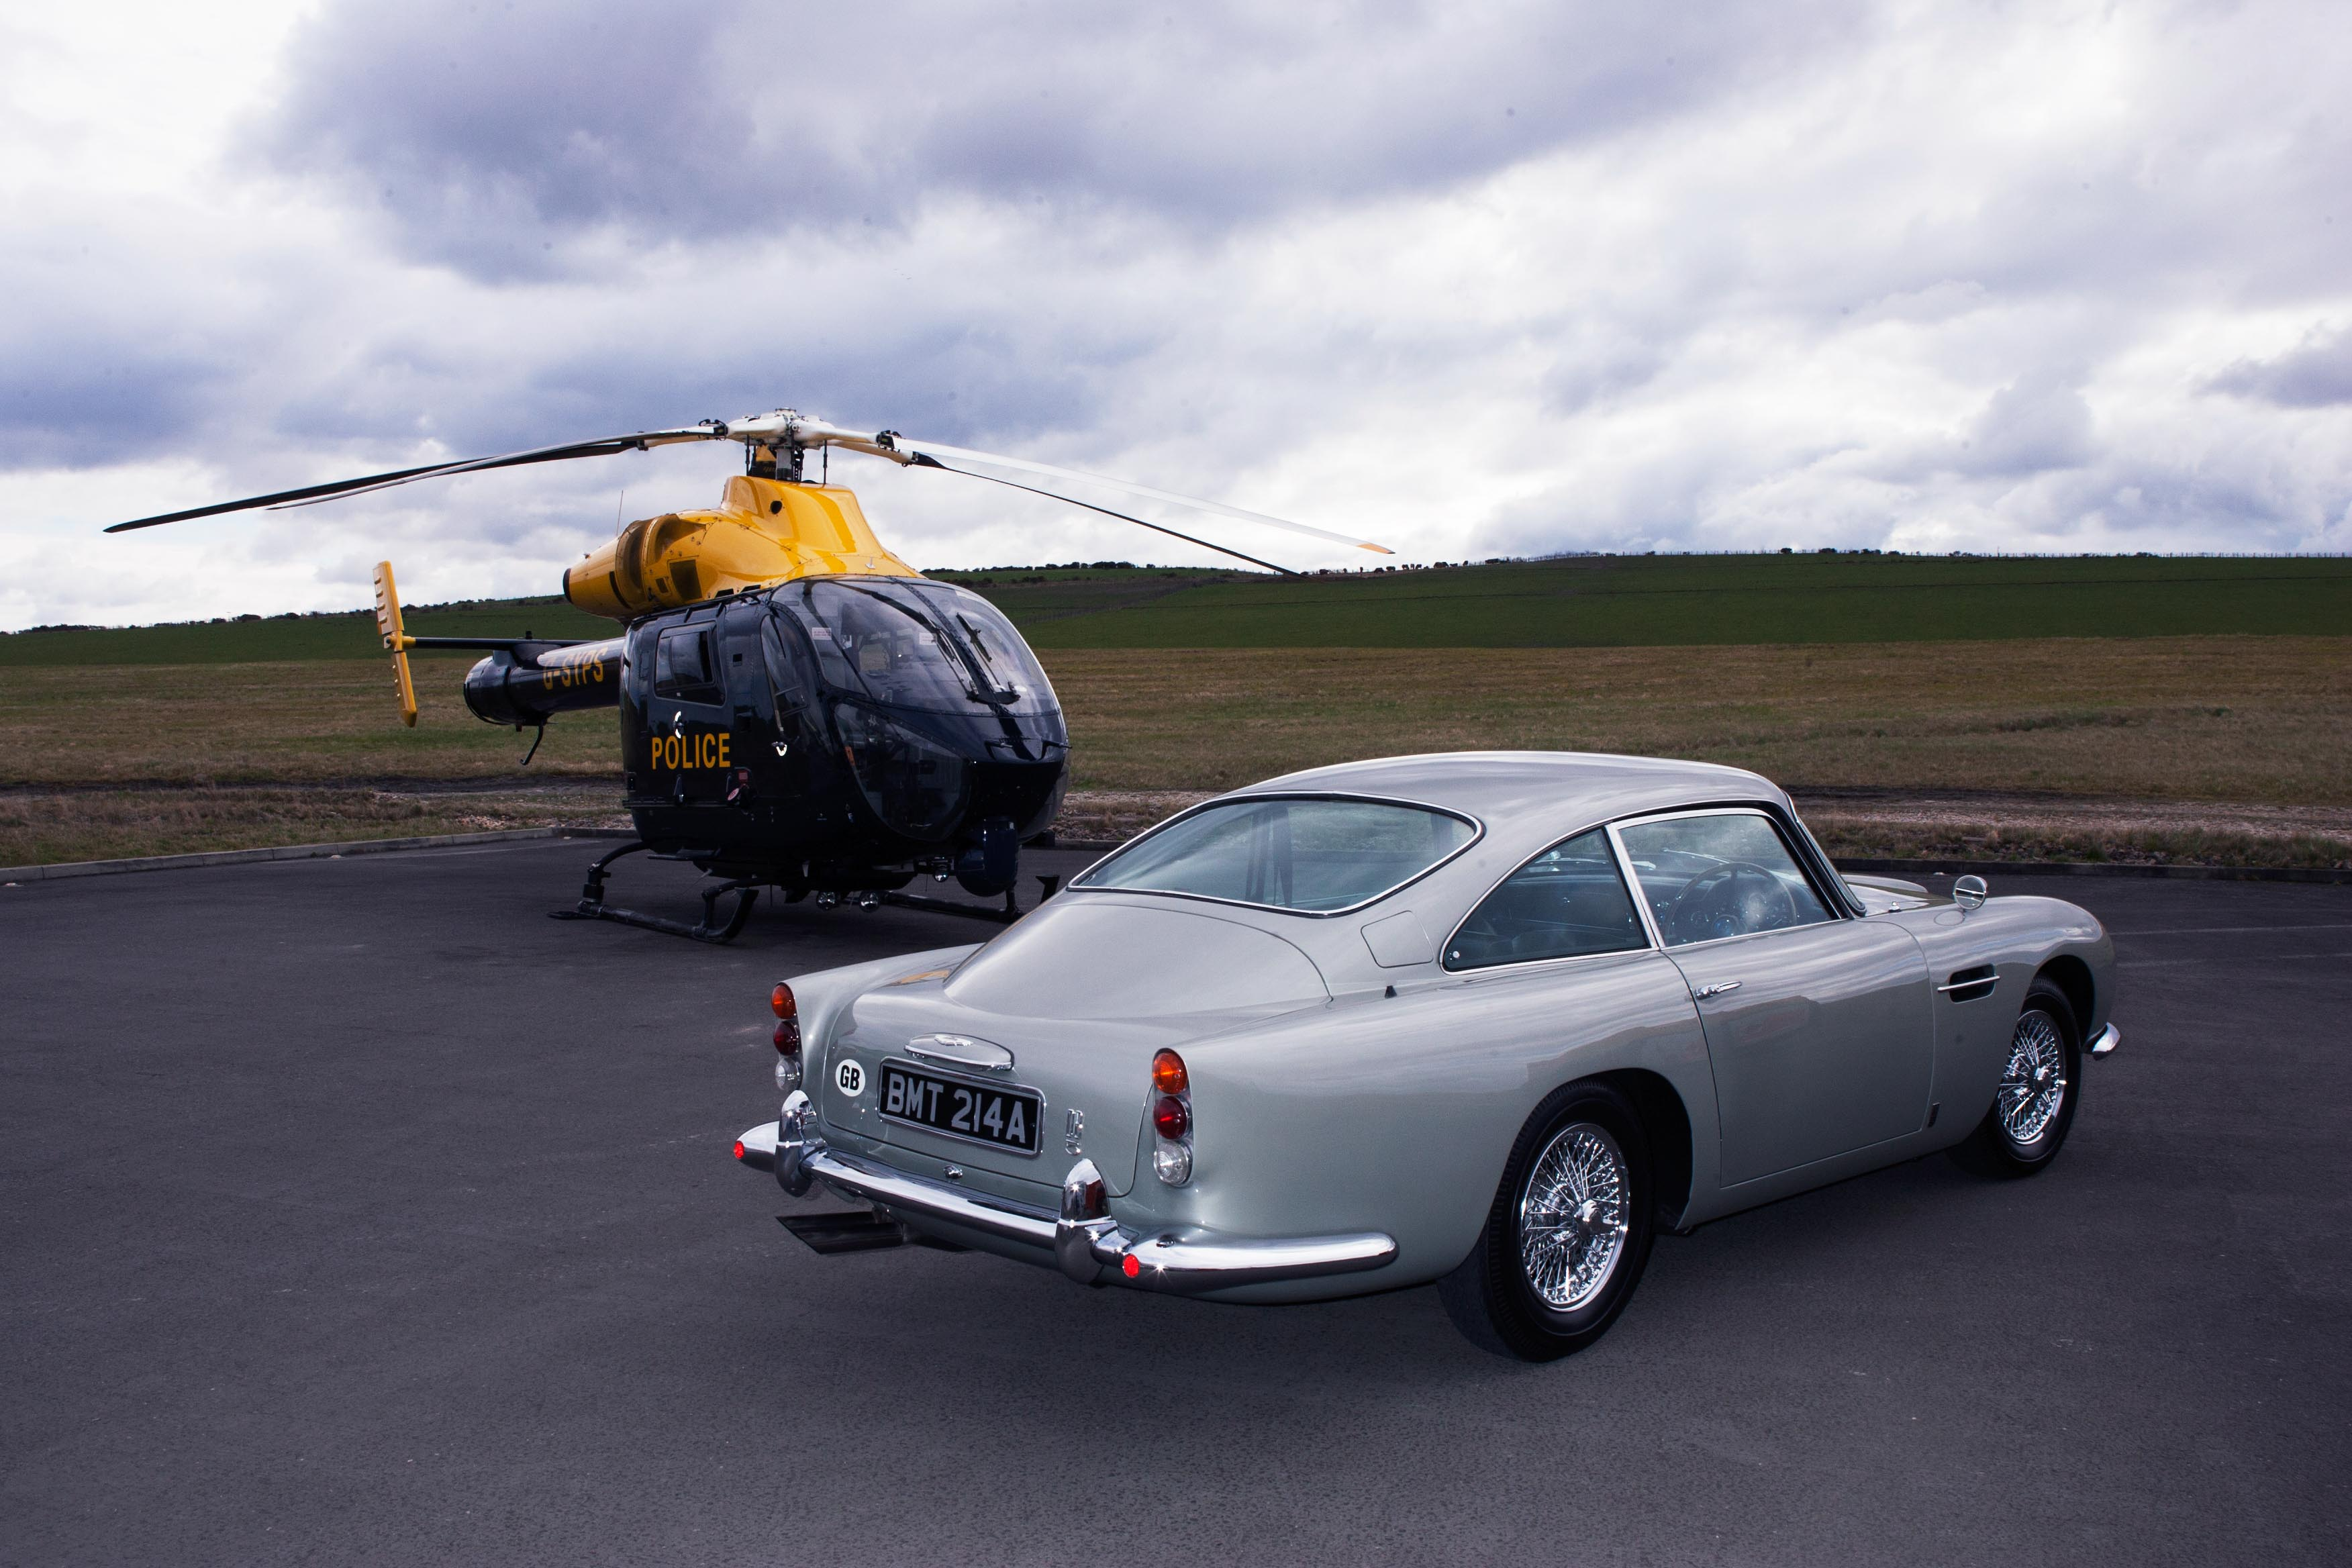 1965 Aston Martin DB5 Helicopter